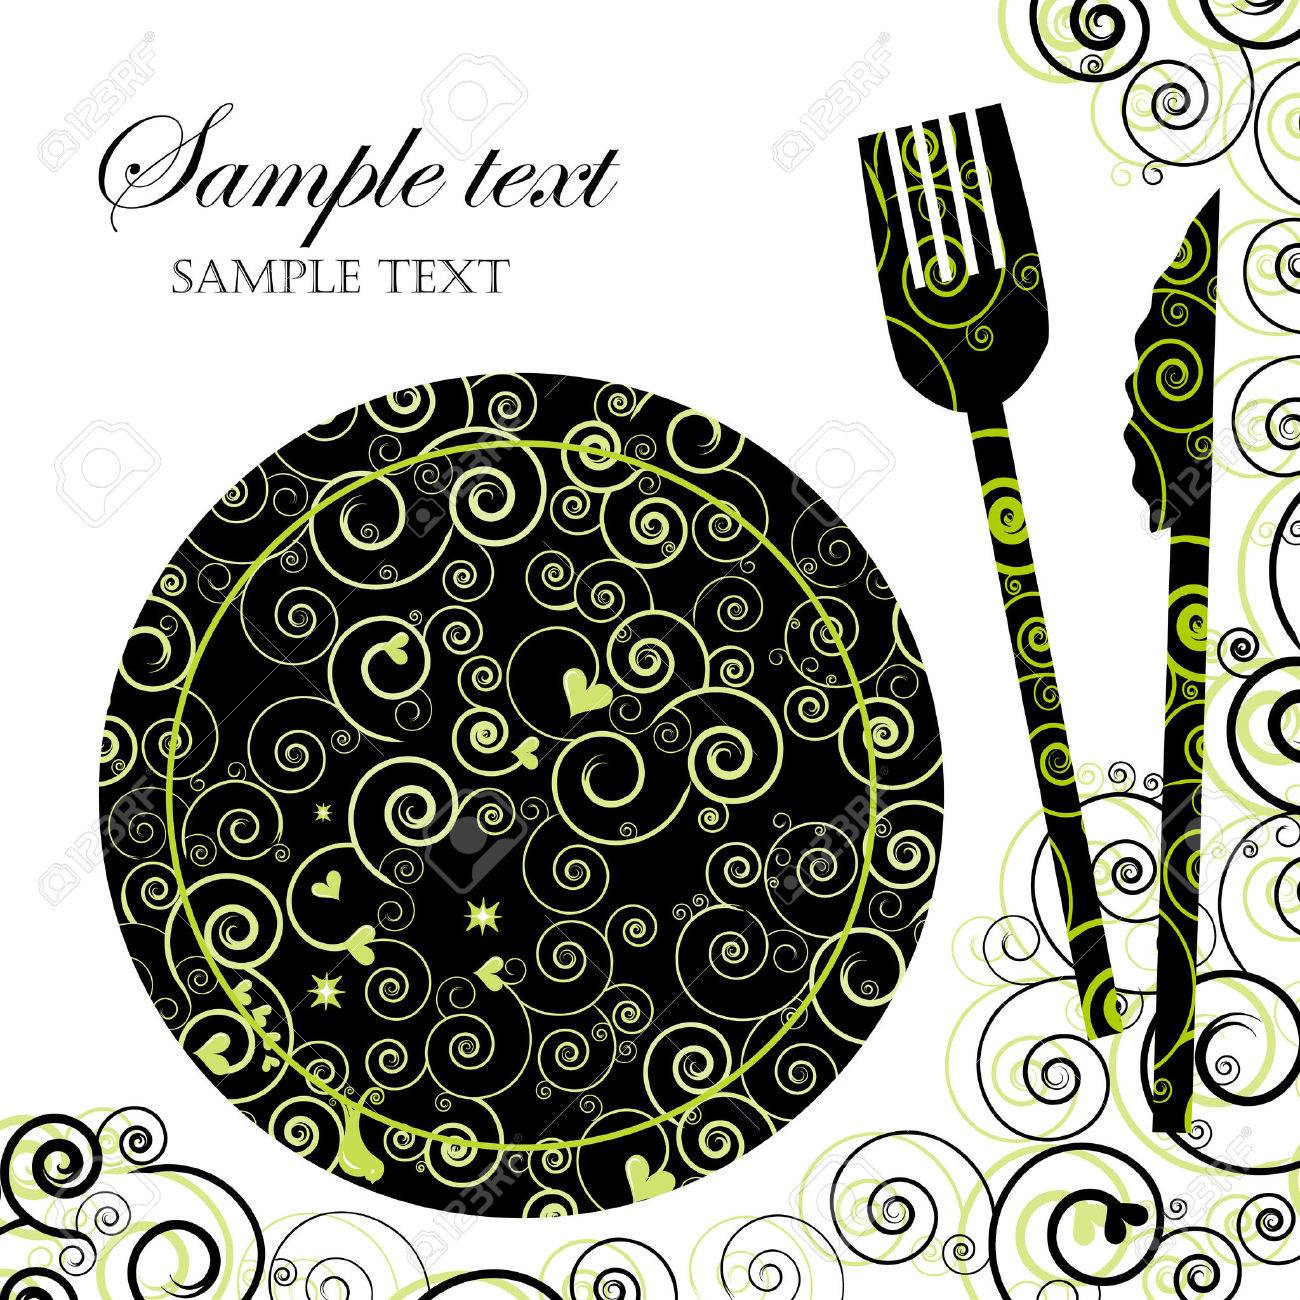 Menu or Invitation for Dinner, Parties and Showers - 6226120